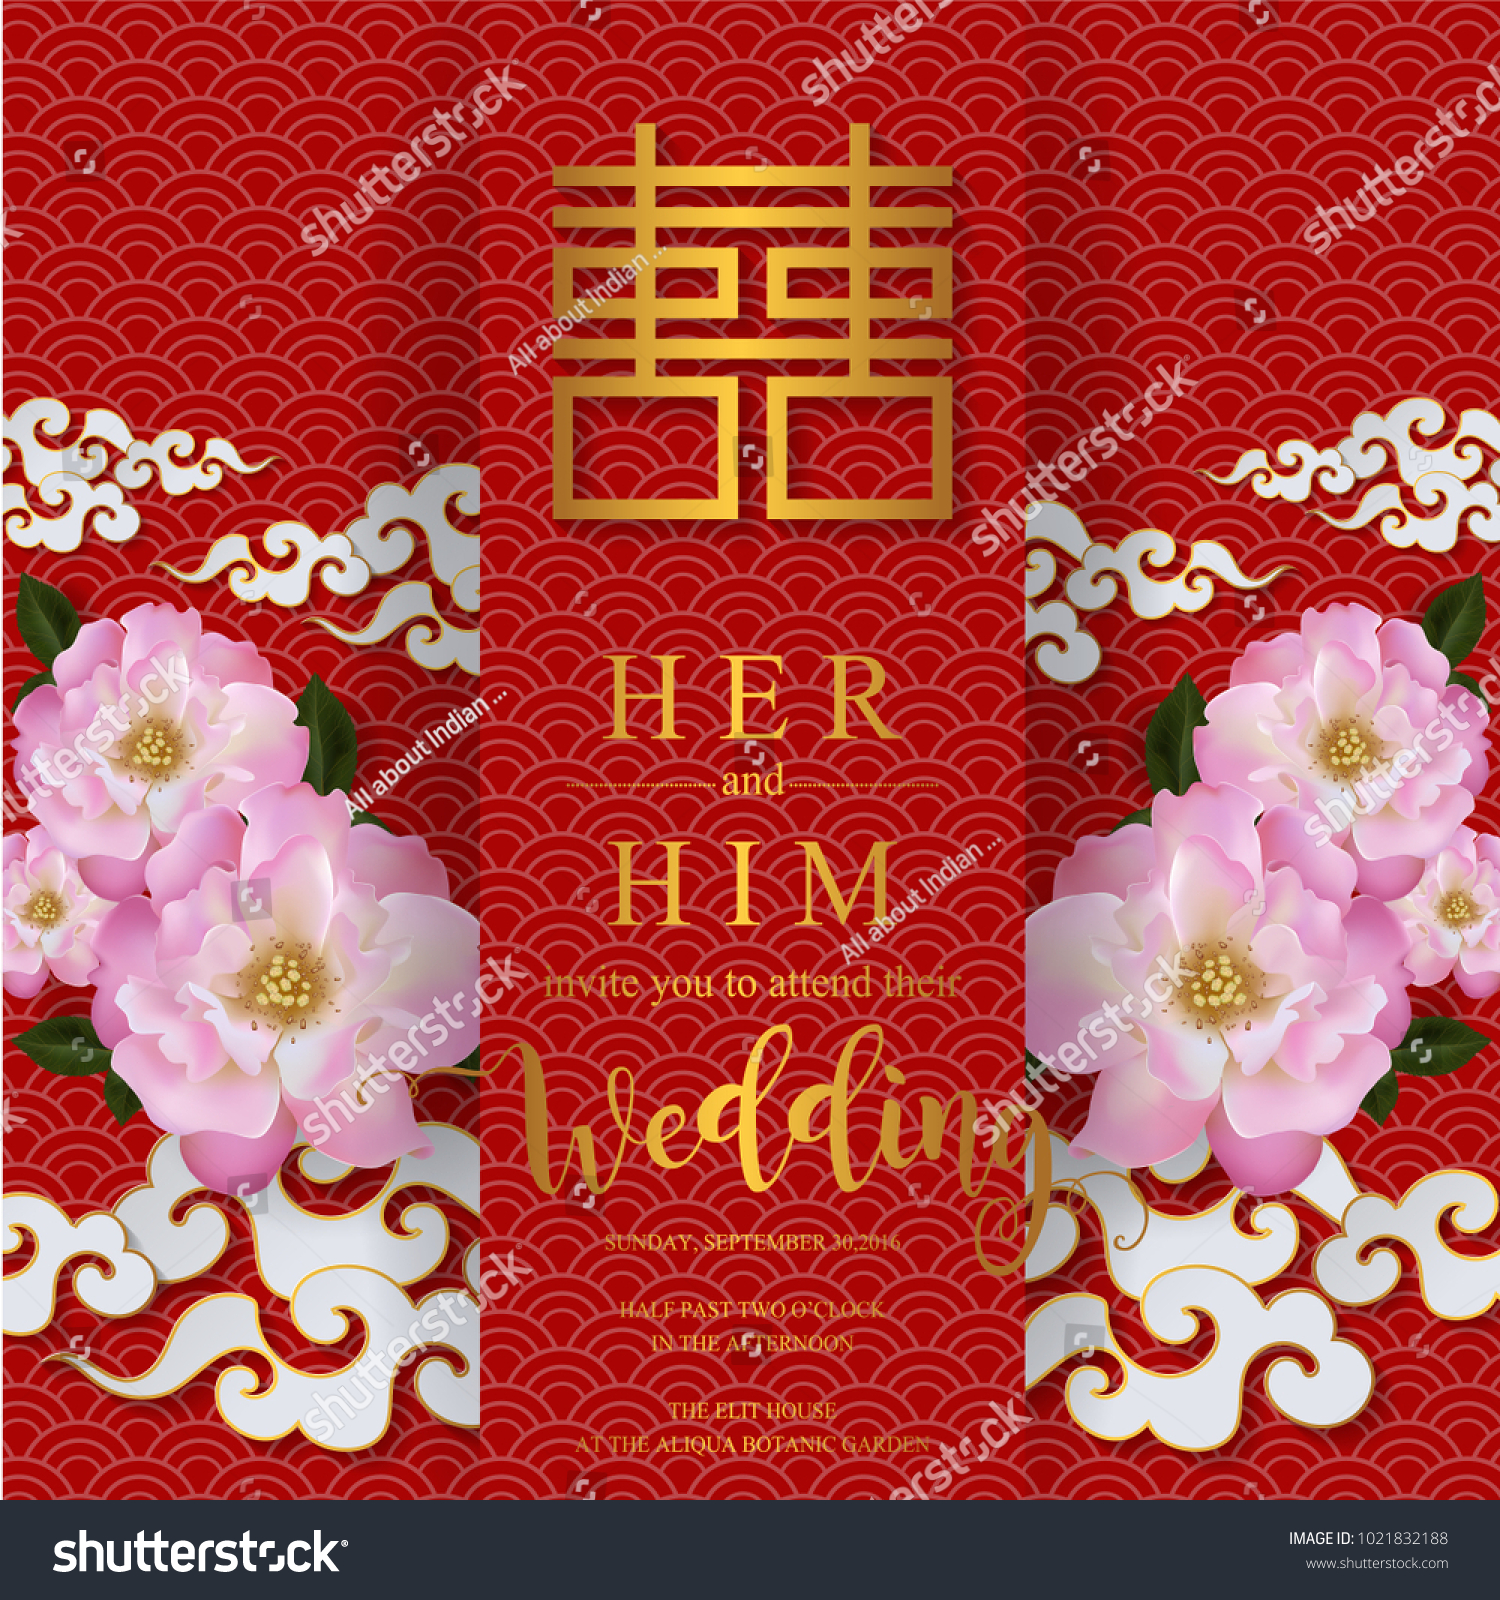 Chinese Wedding Invitation Card Templates Gold Stock Vector ...